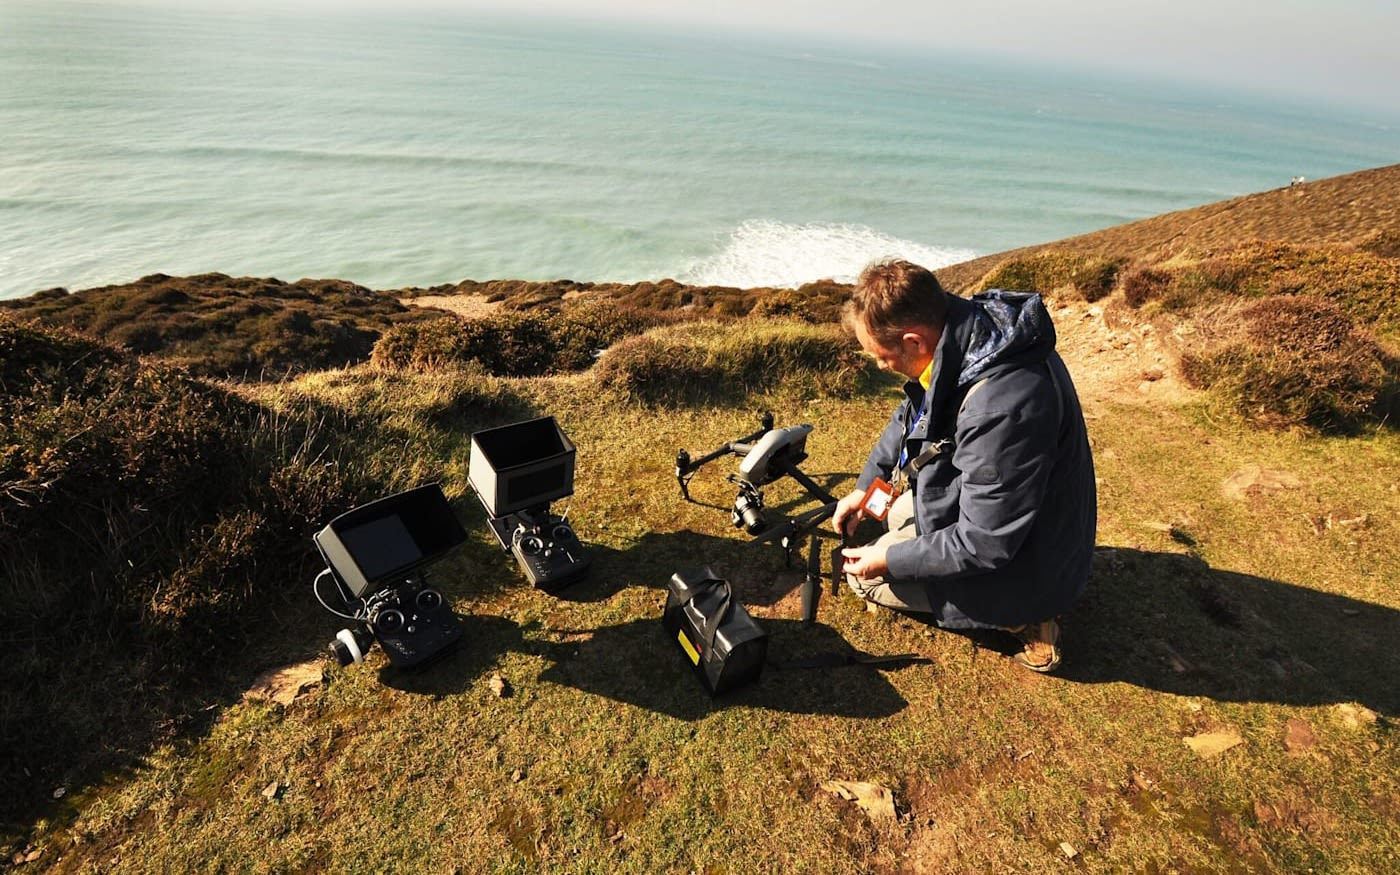 Adrian McDowell crouched next to drones on top of a cliff with sea views